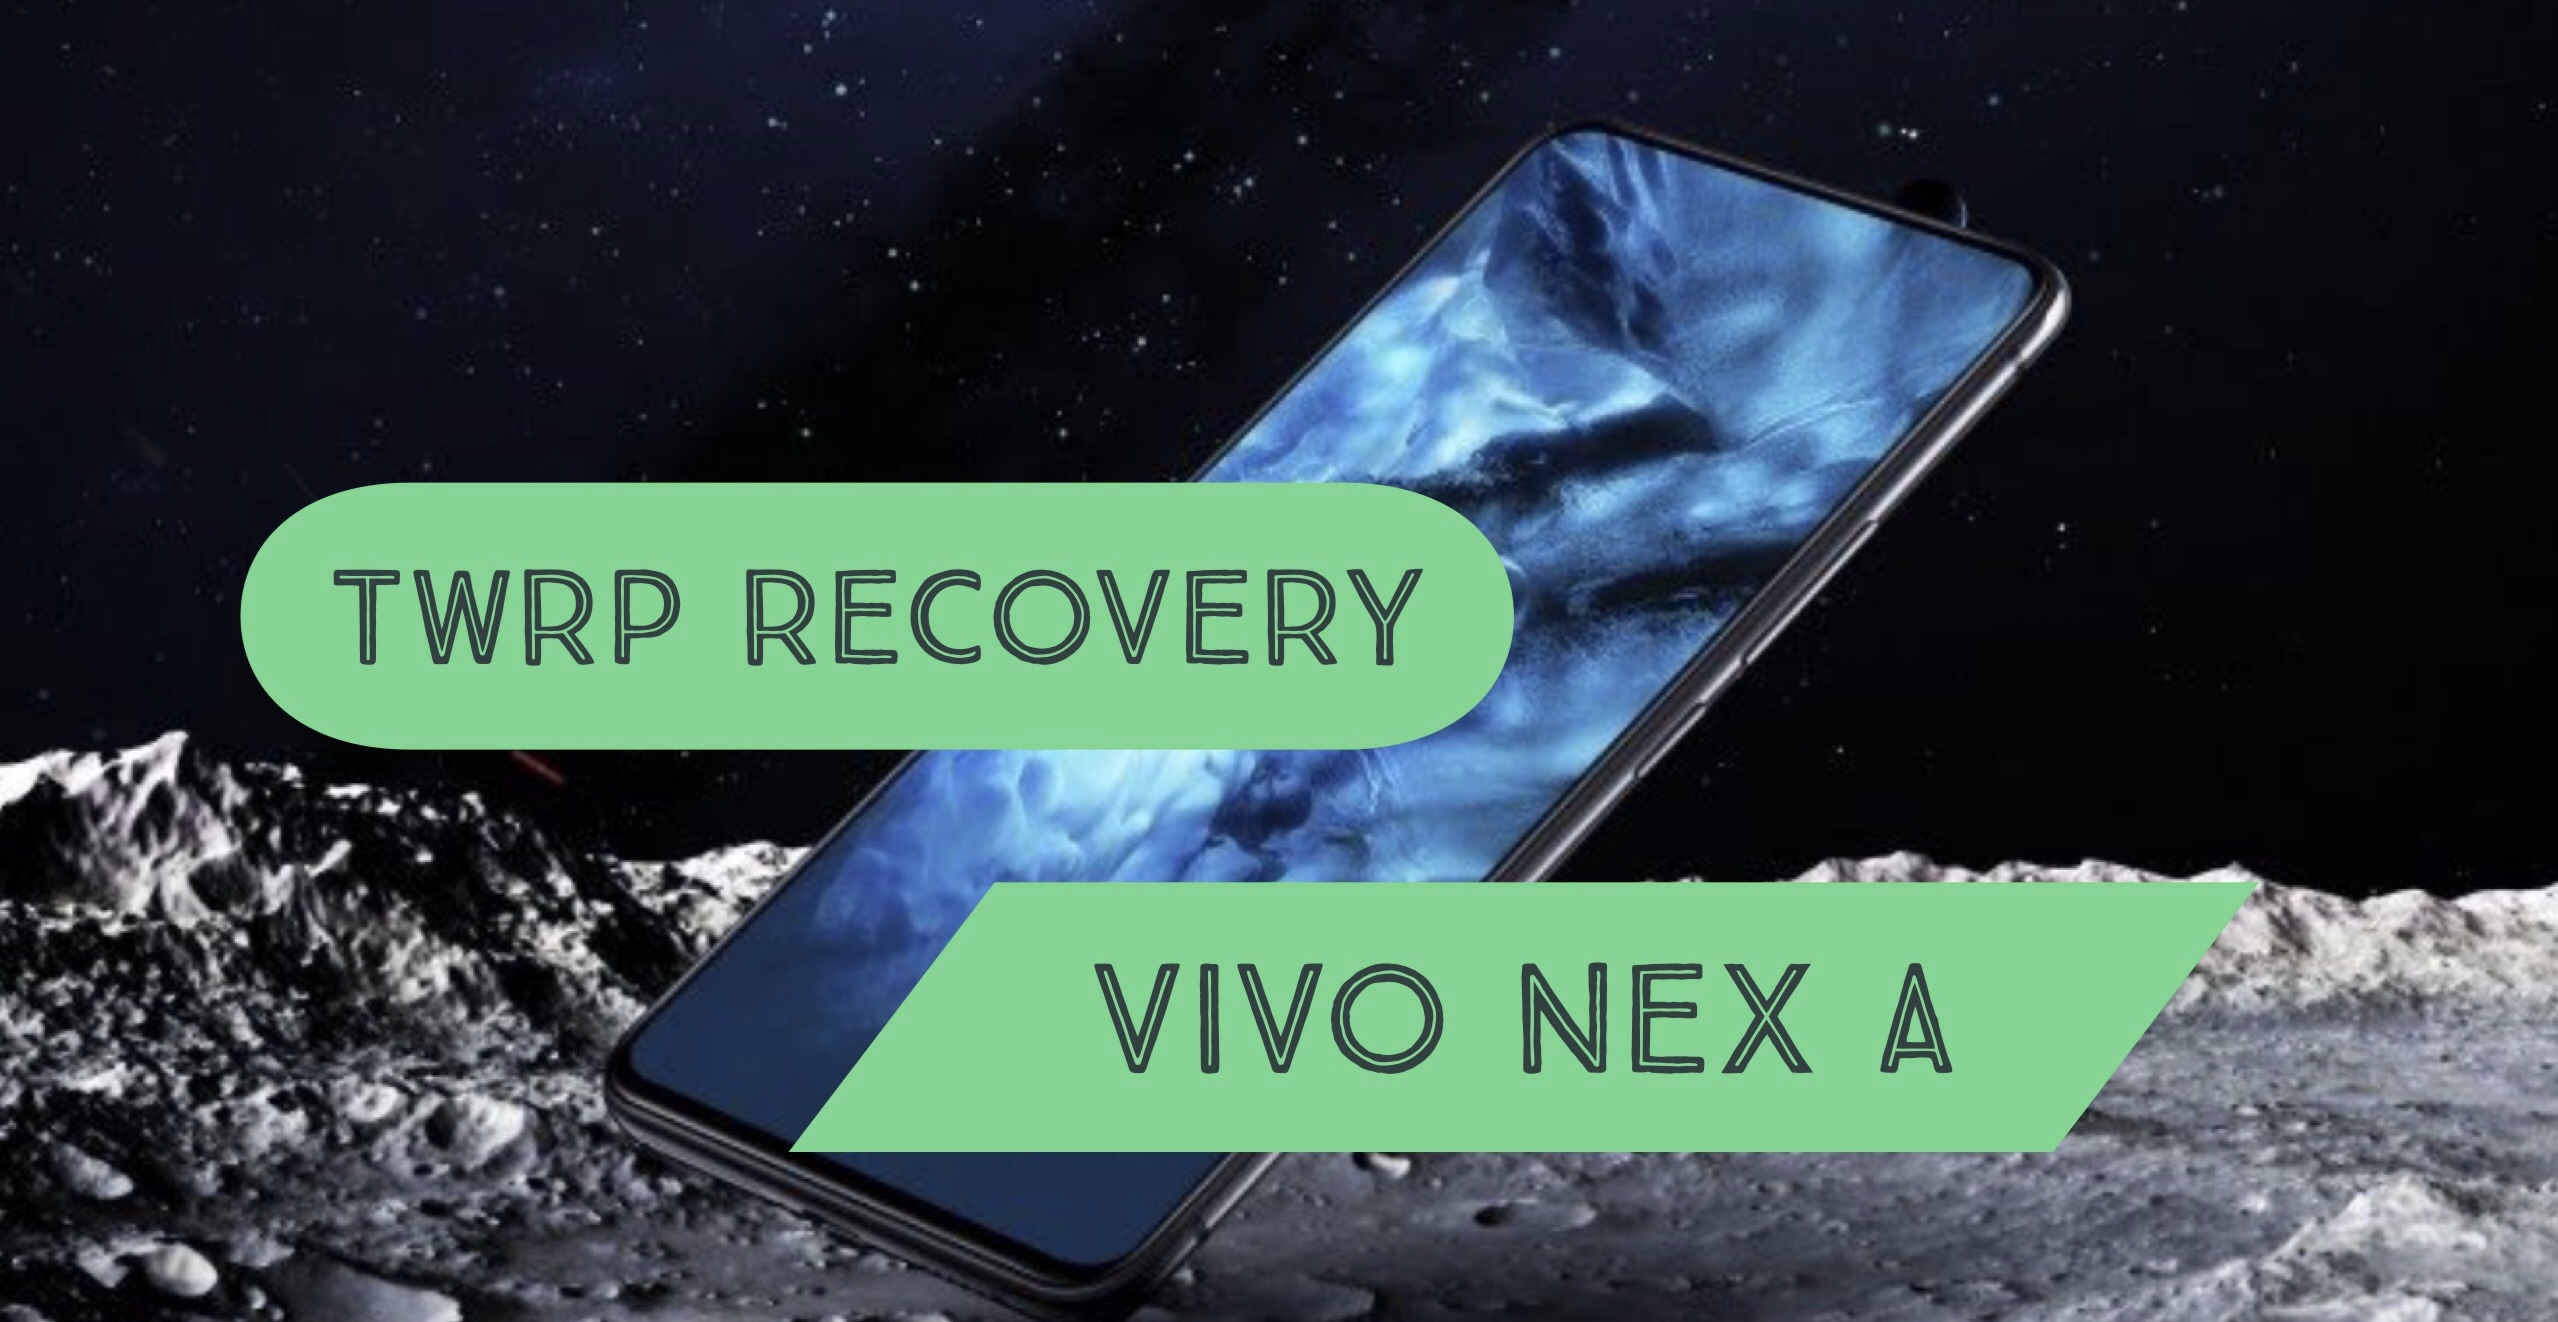 How to Install TWRP Recovery on VIVO NEX A: TUTORIAL GUIDE